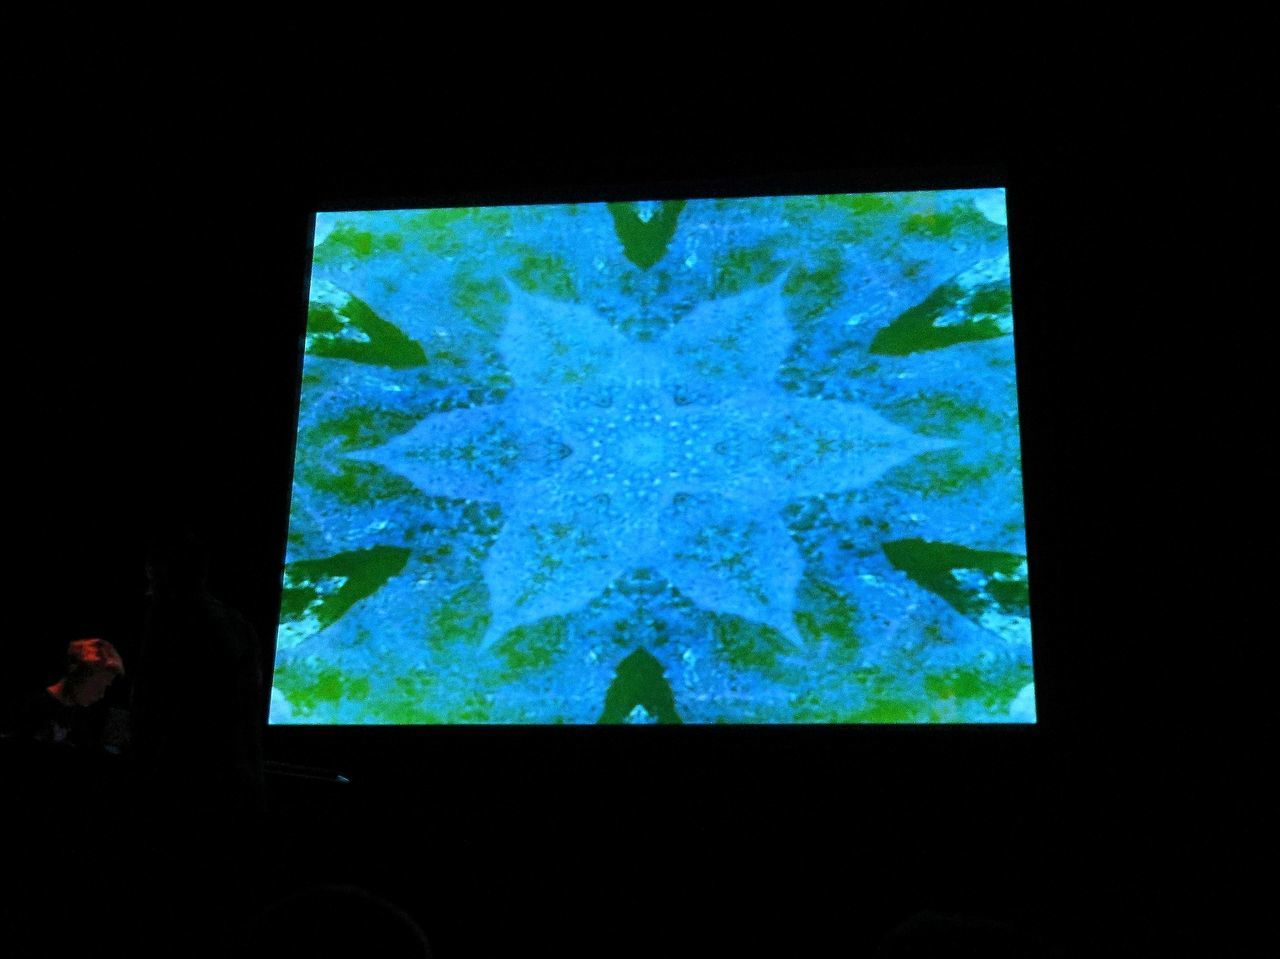 Ulrich Schnauss @ CCA (Visuals by Nat Urazmetova) - Glasgow 22/03/2017 Music Concert Glasgow  Gig German Live Berlin Producer Tangerinedream Multi Colored Cca Downtempo Black Background Backgrounds Idm Ambient Electronic Naturazmetova Visuals Ulrichschnauss Abstract